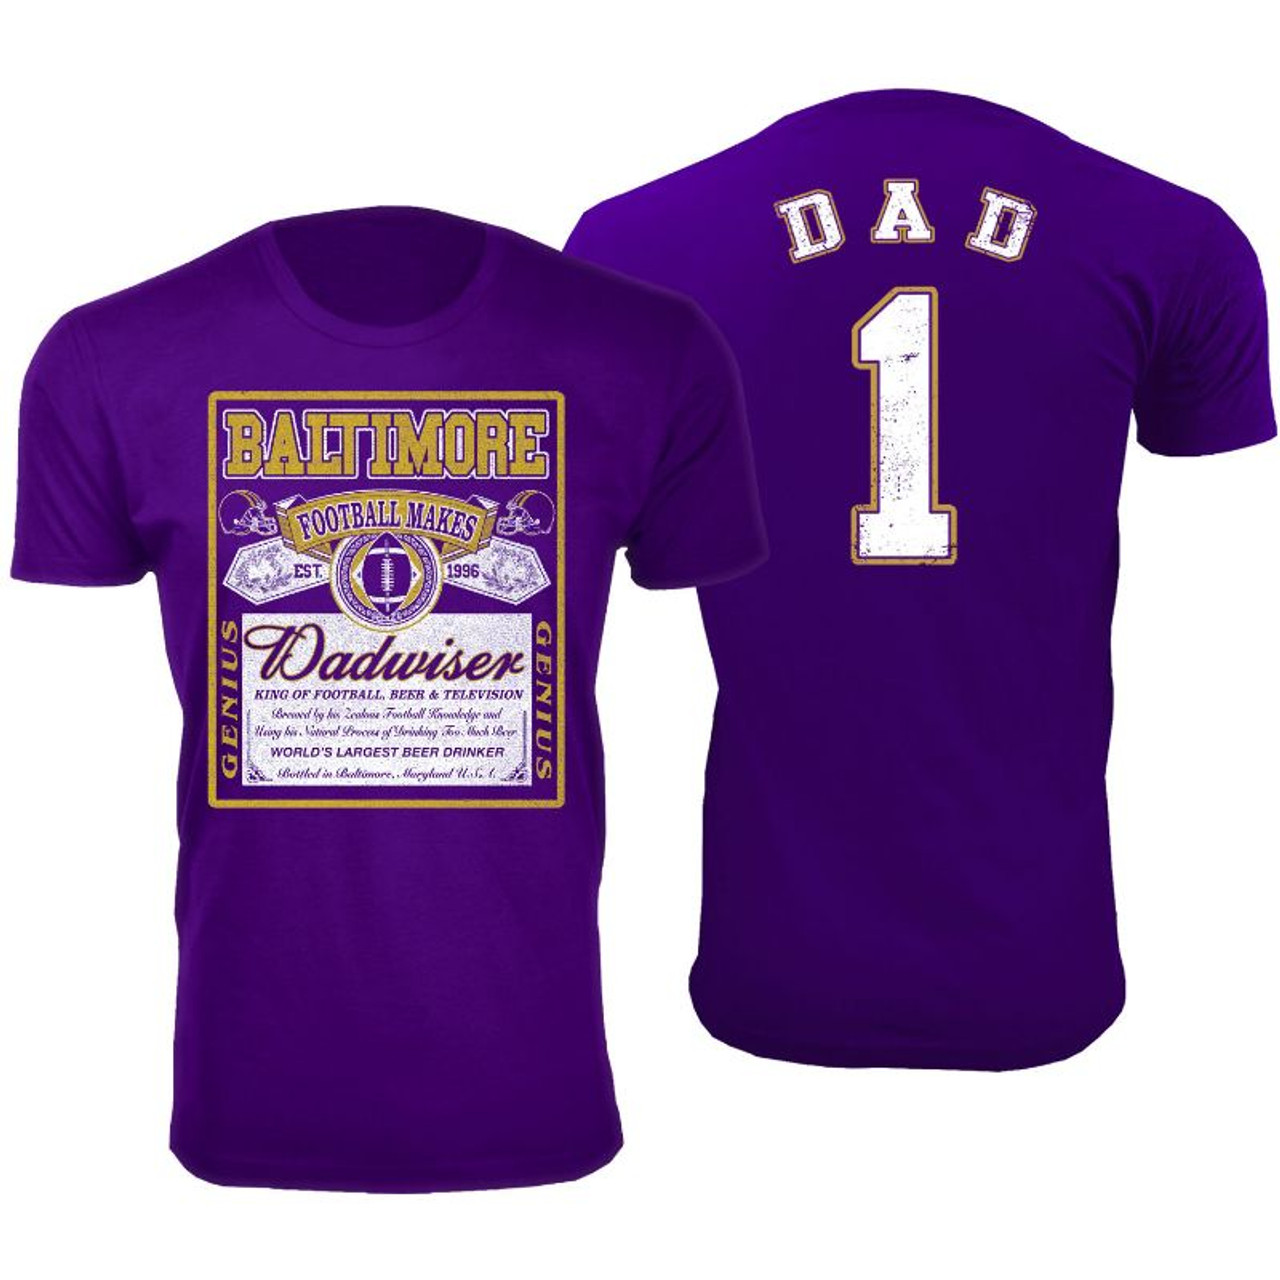 Men's Perfect Gift for Dad Dadwiser Football T-Shirts